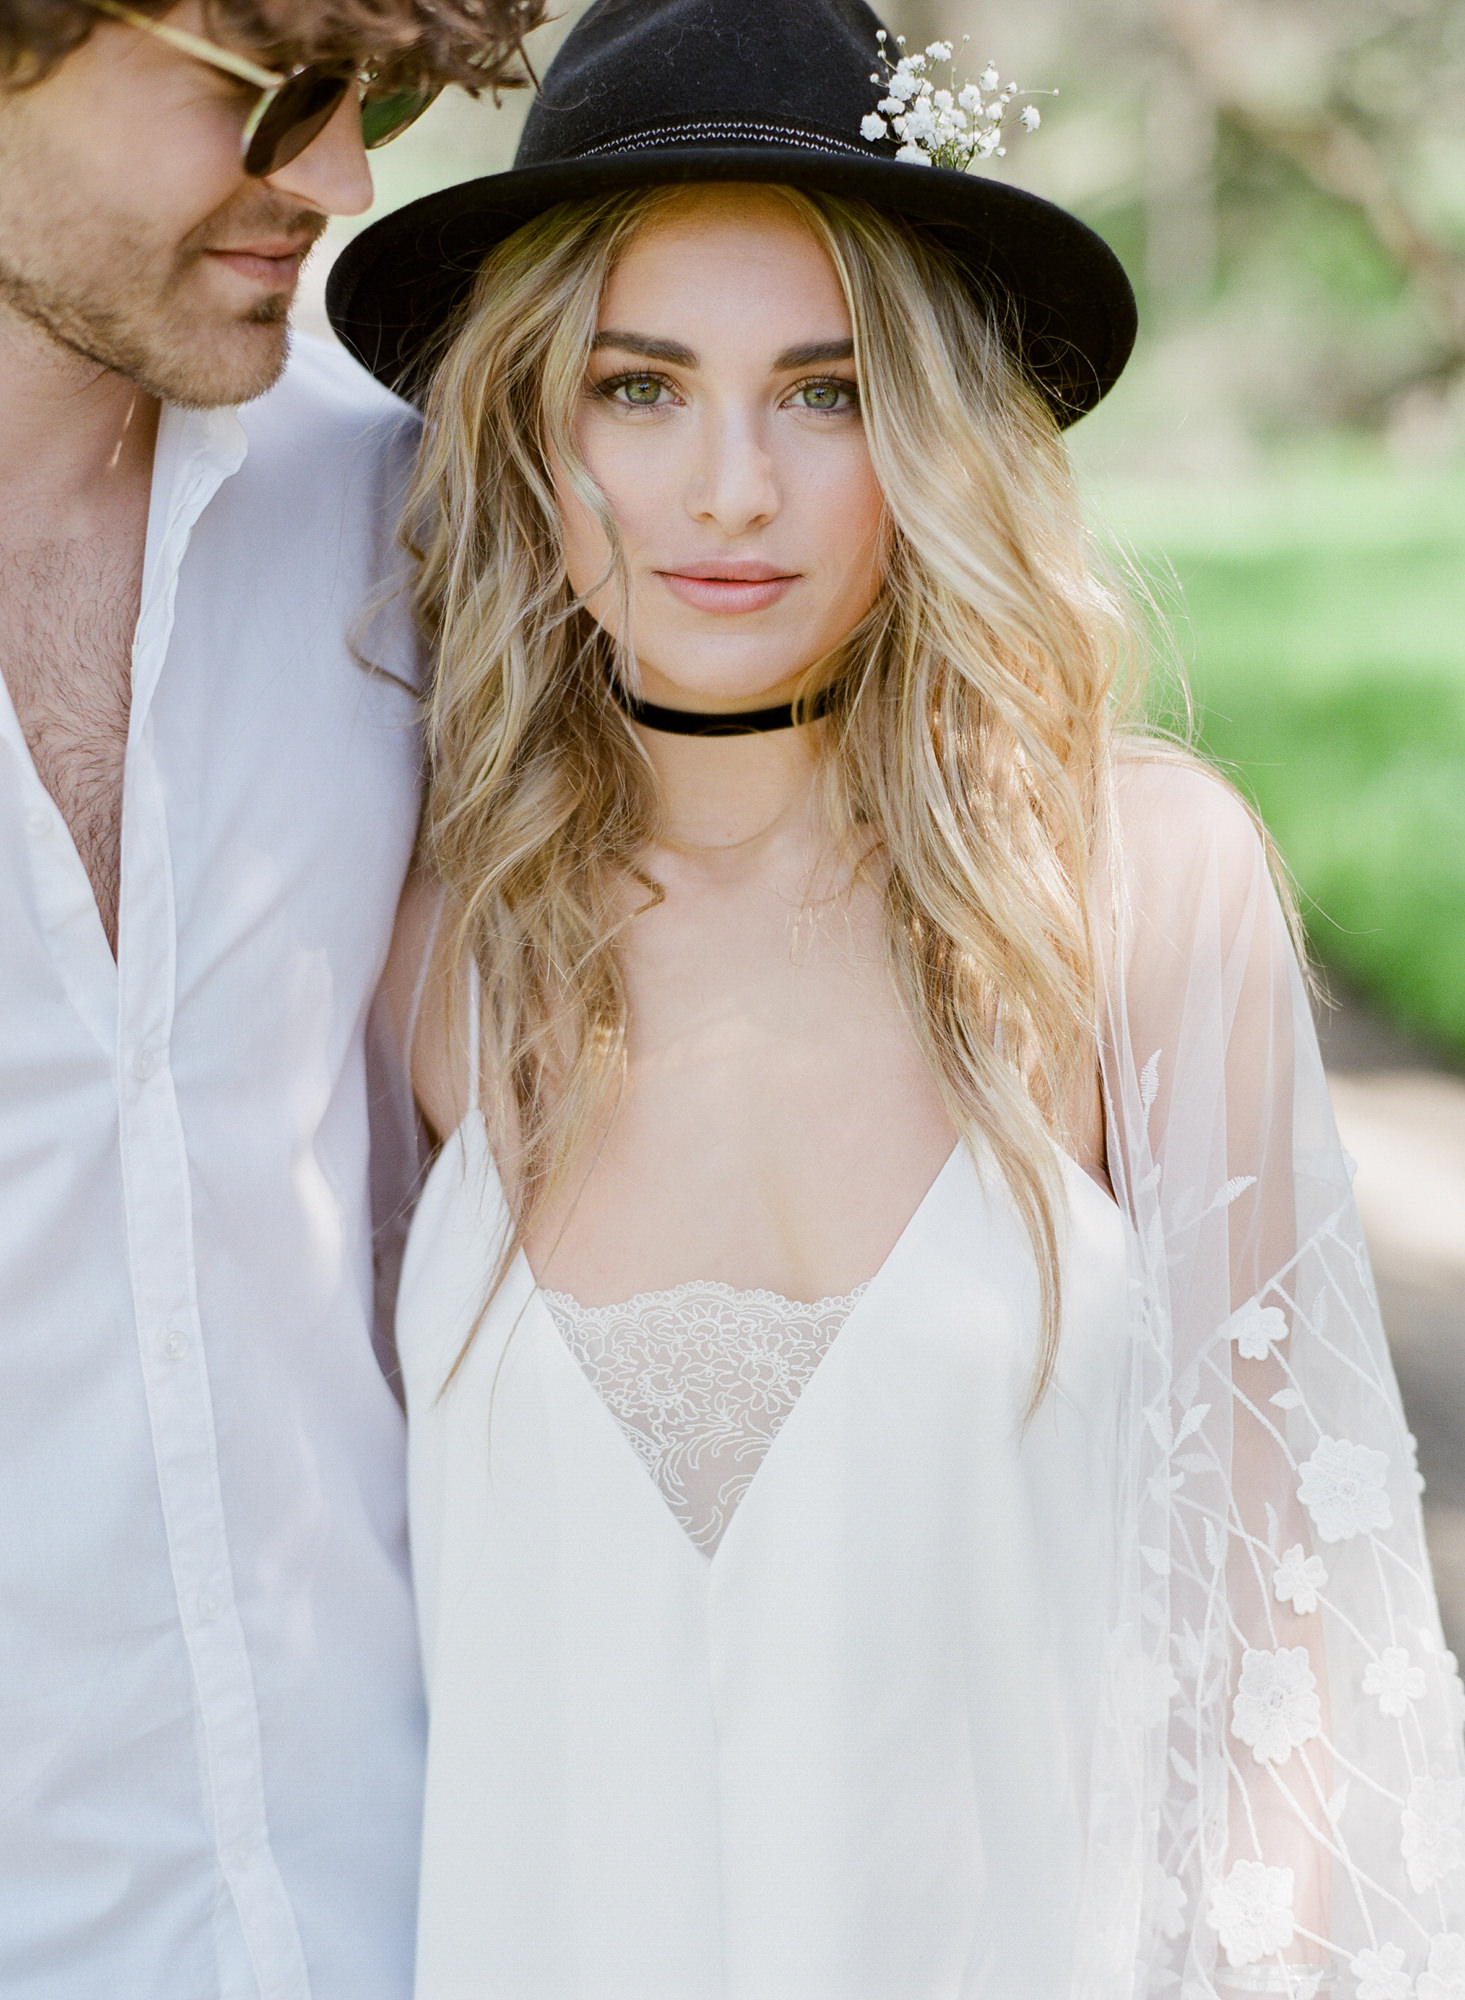 Bride in felt hat with long curls and boho dress - Greg Finck Photography